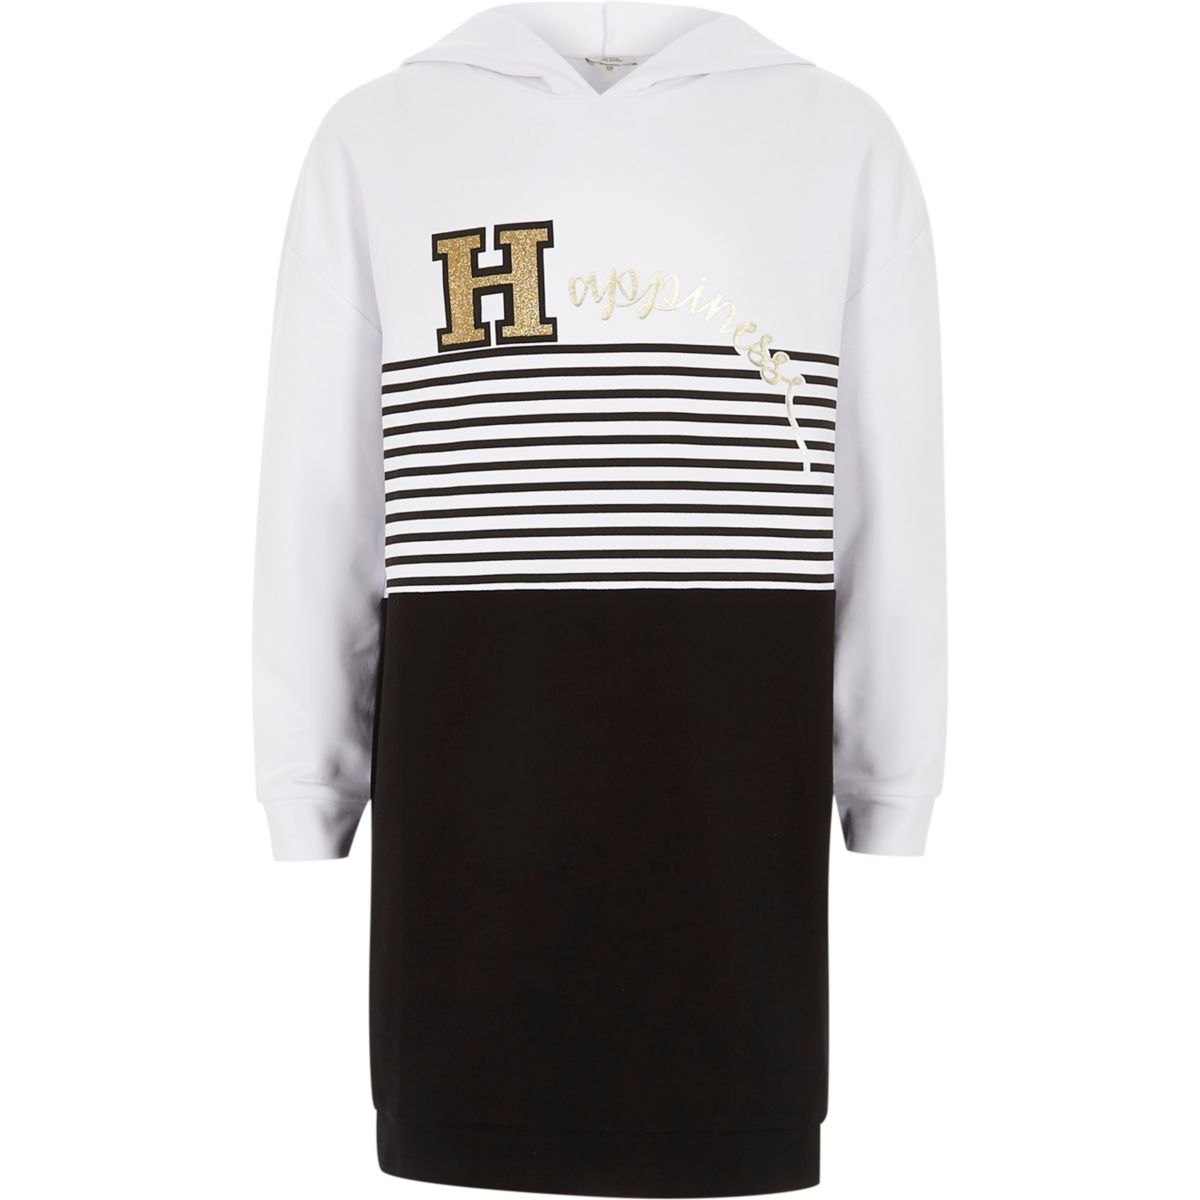 Girls black stripe 'happiness' hoodie dress